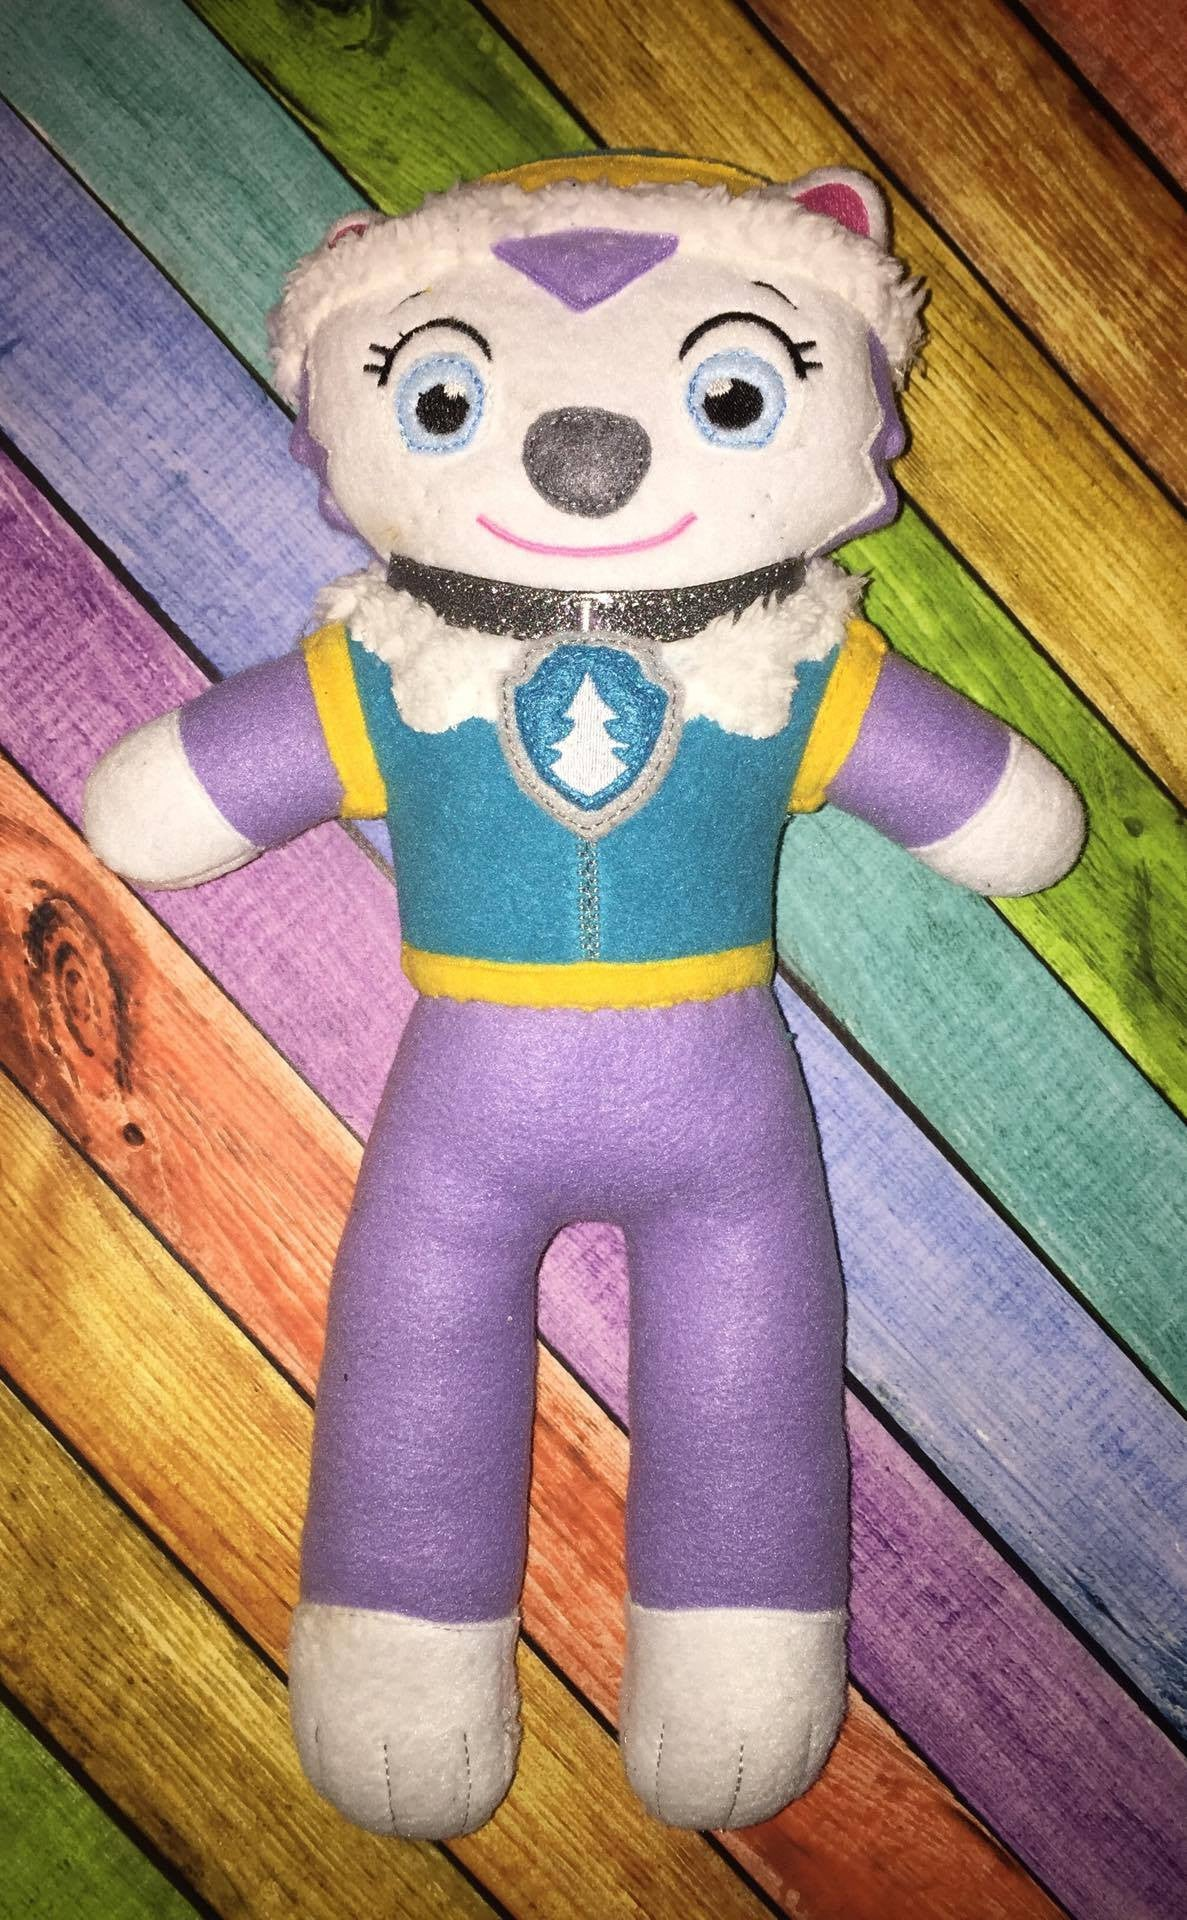 EVEREST PAW PATROL DOLL PATTERN